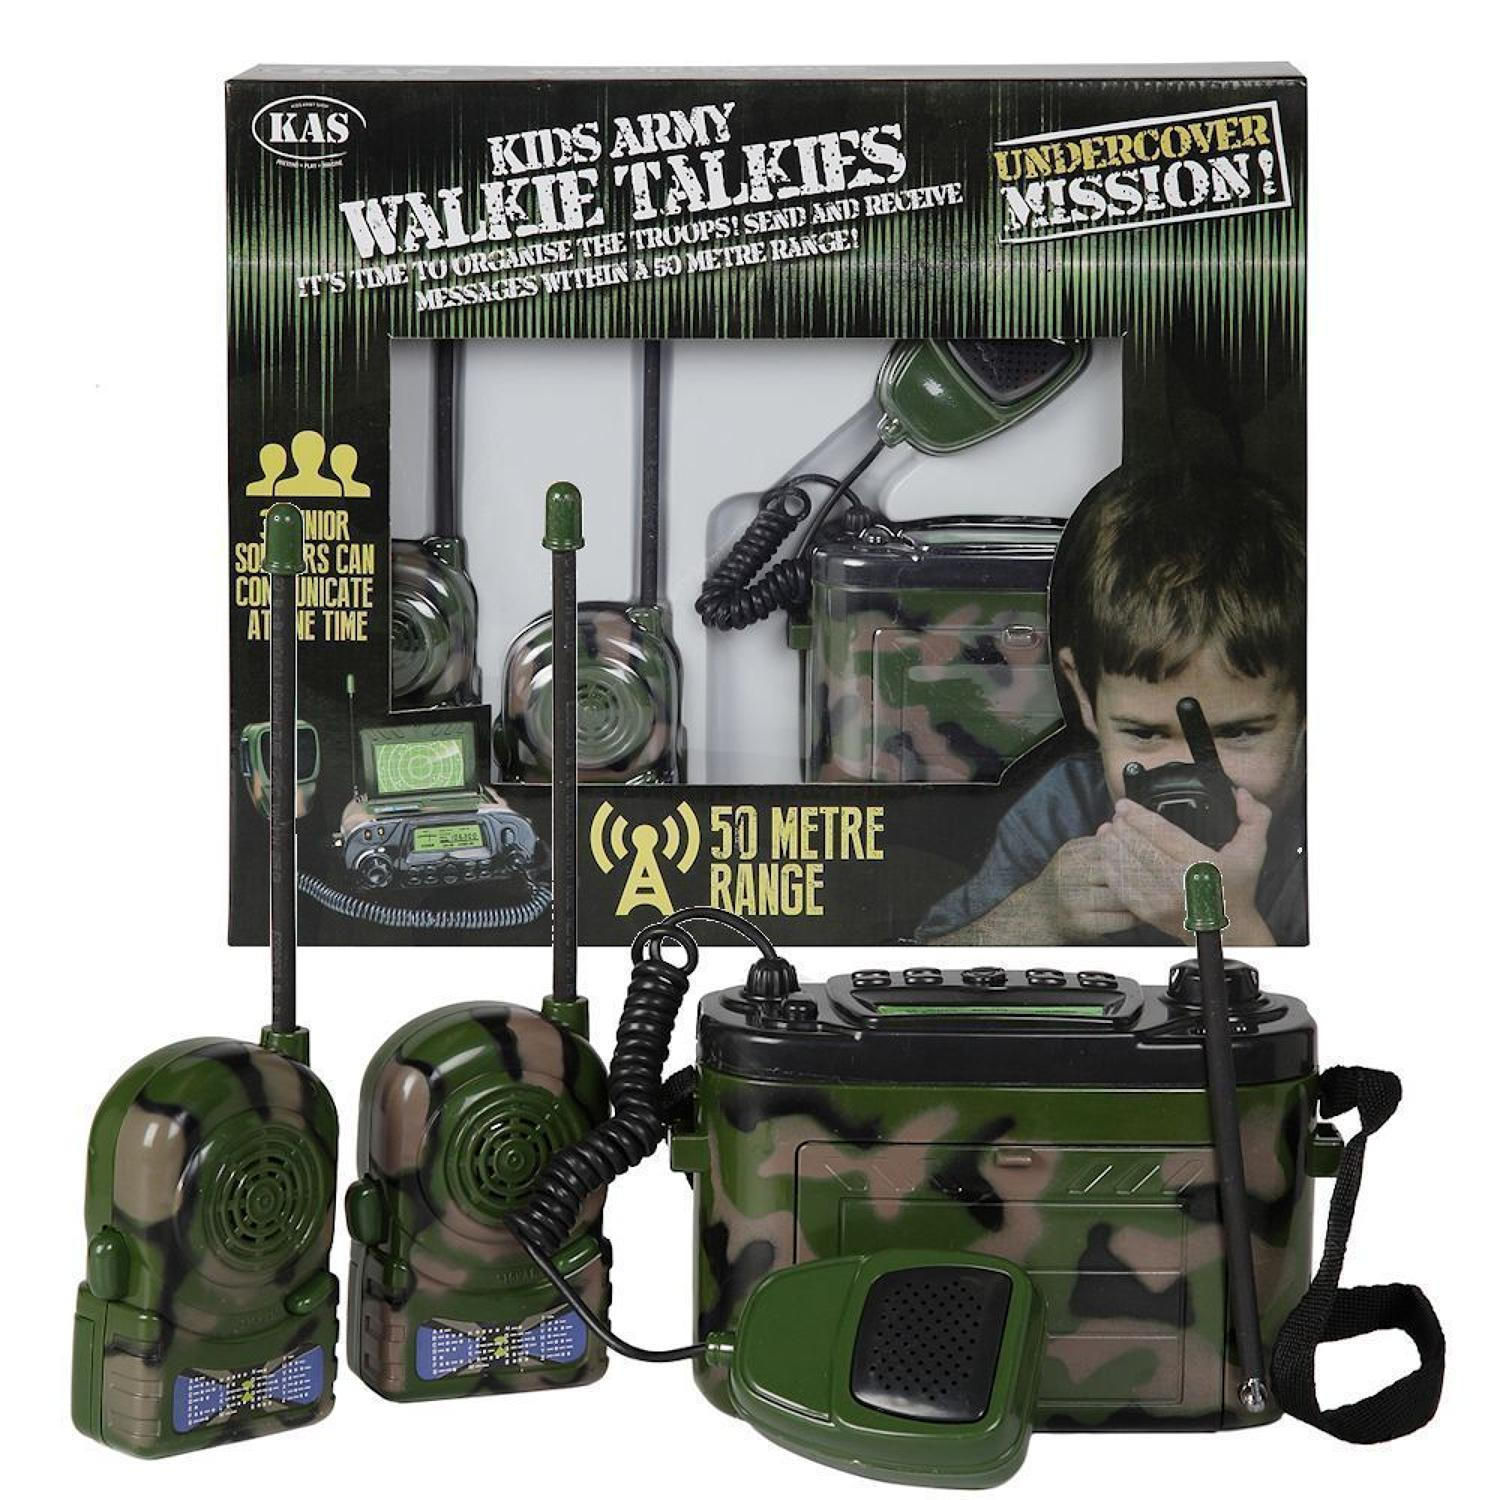 Army Walkie-Talkies with Base